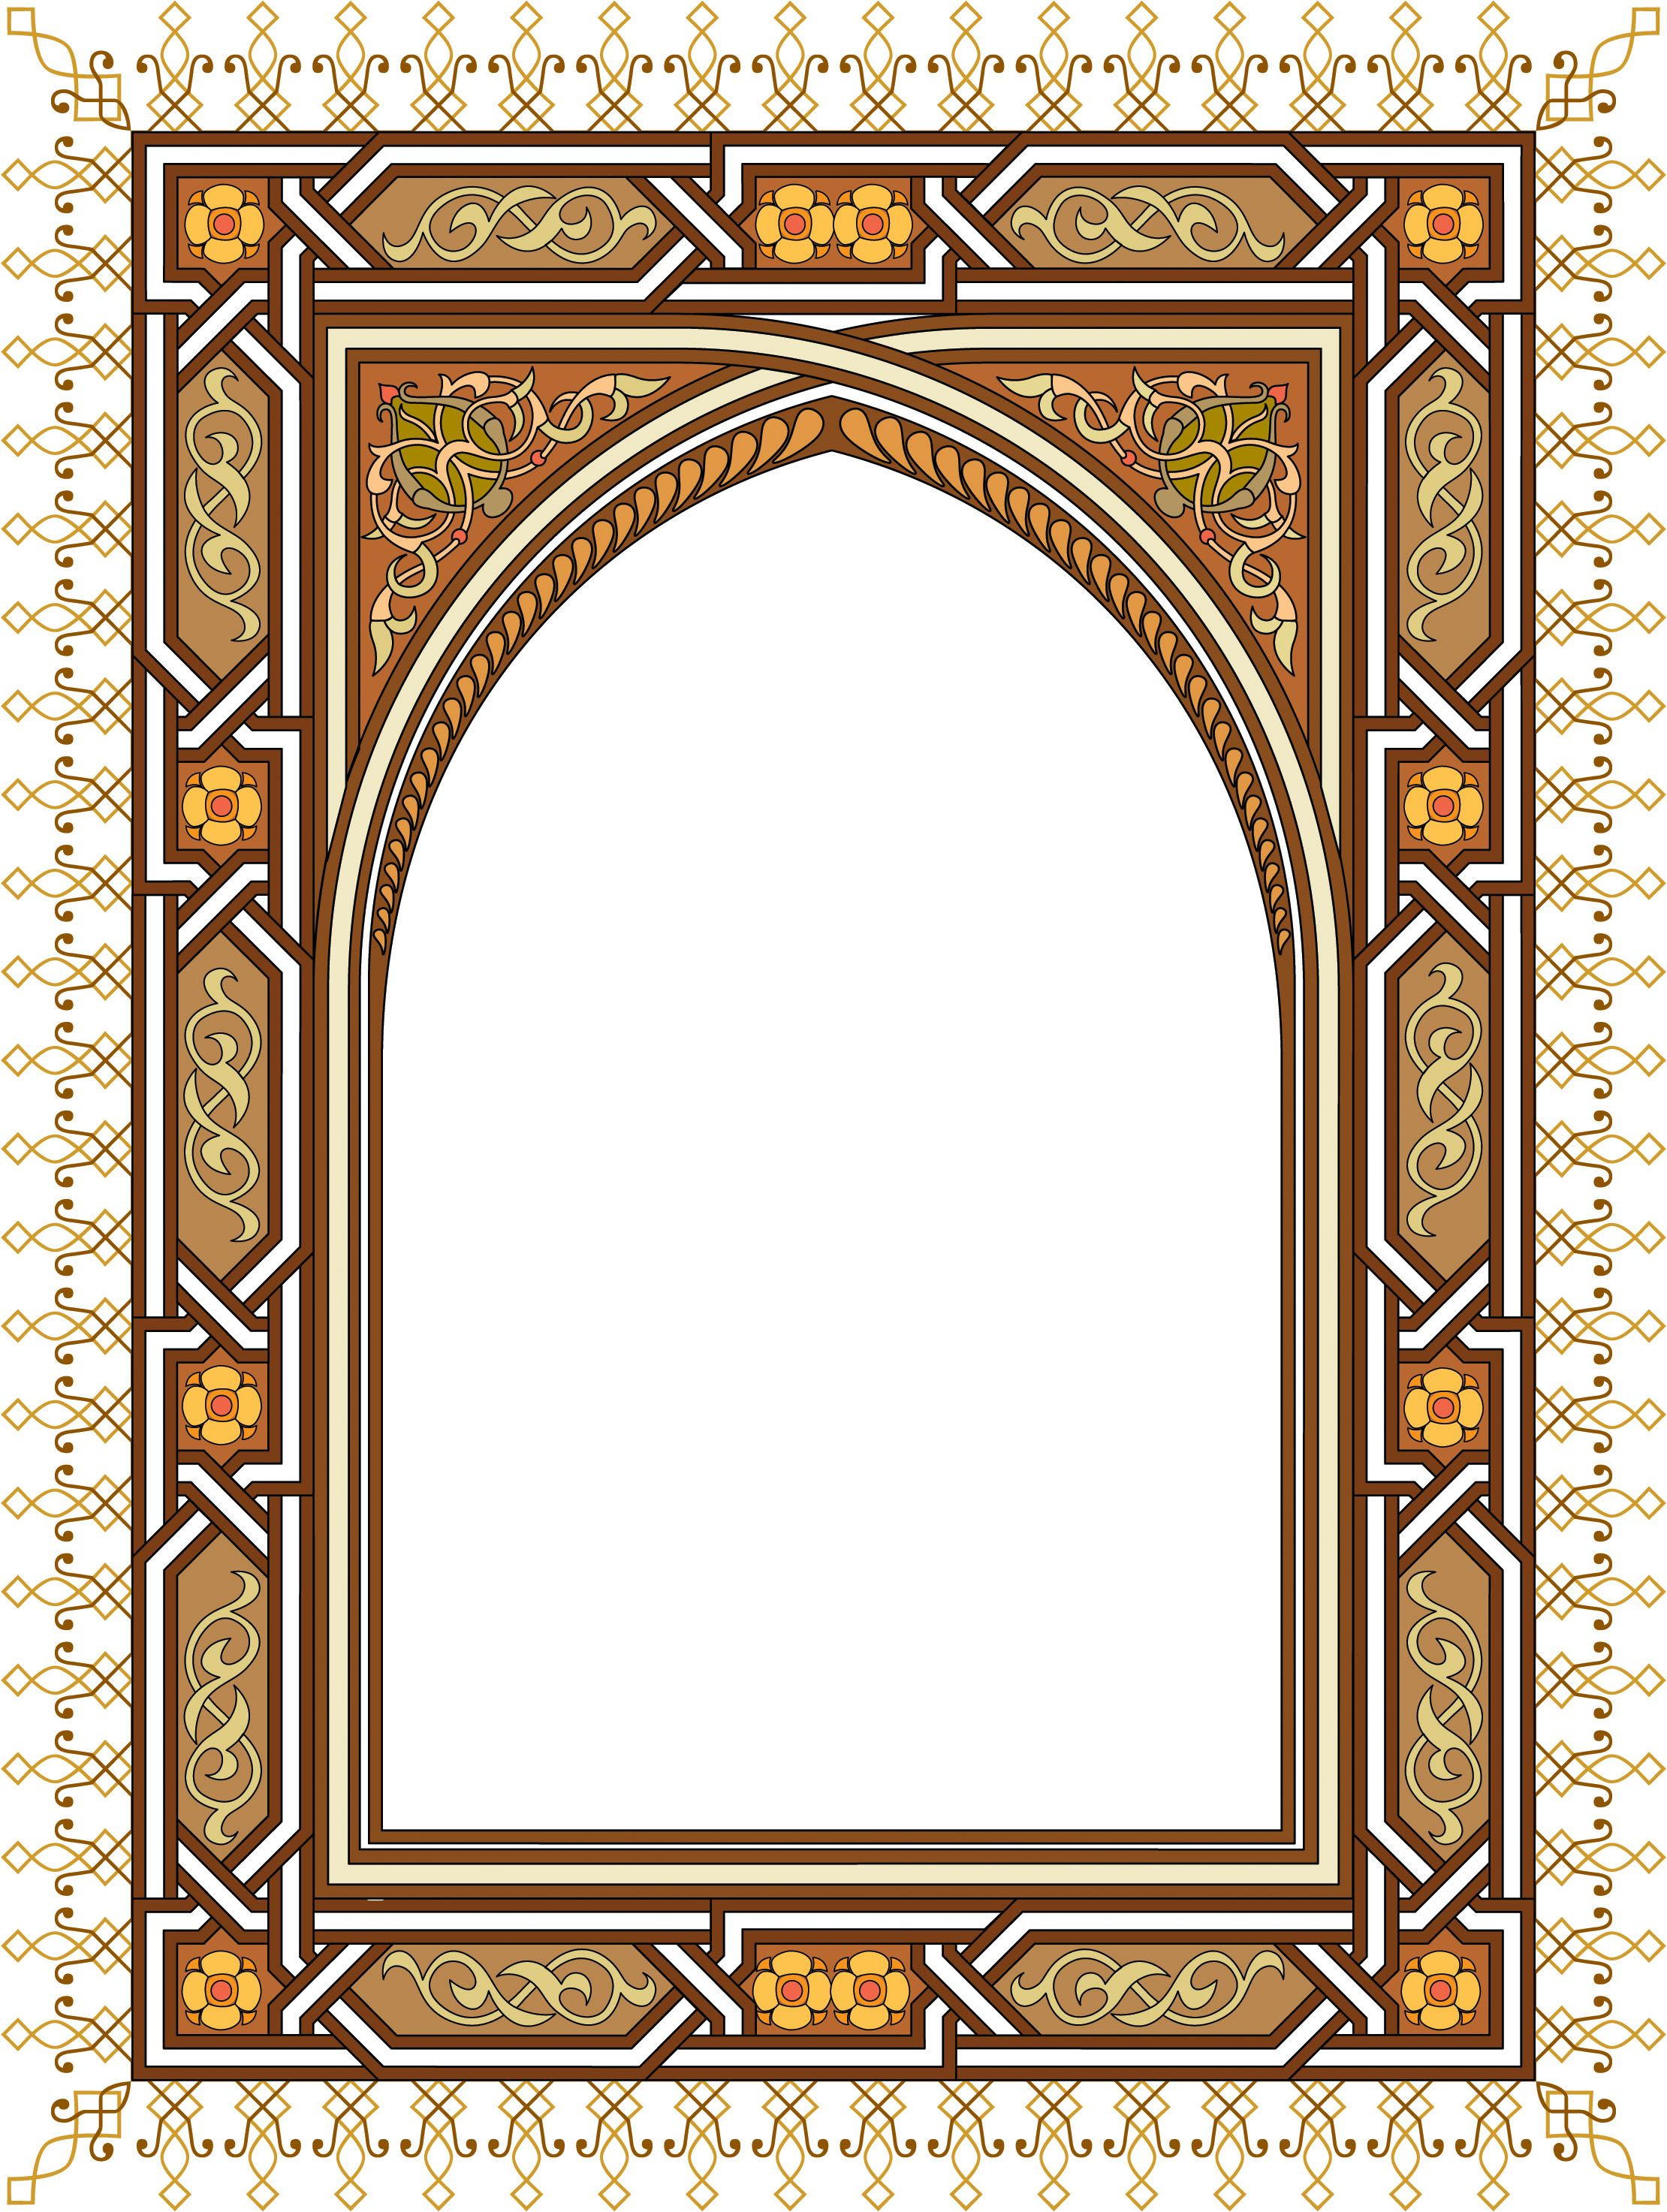 43-Arabesque (Islamic Art) | arabesque | Pinterest | Patrones ...